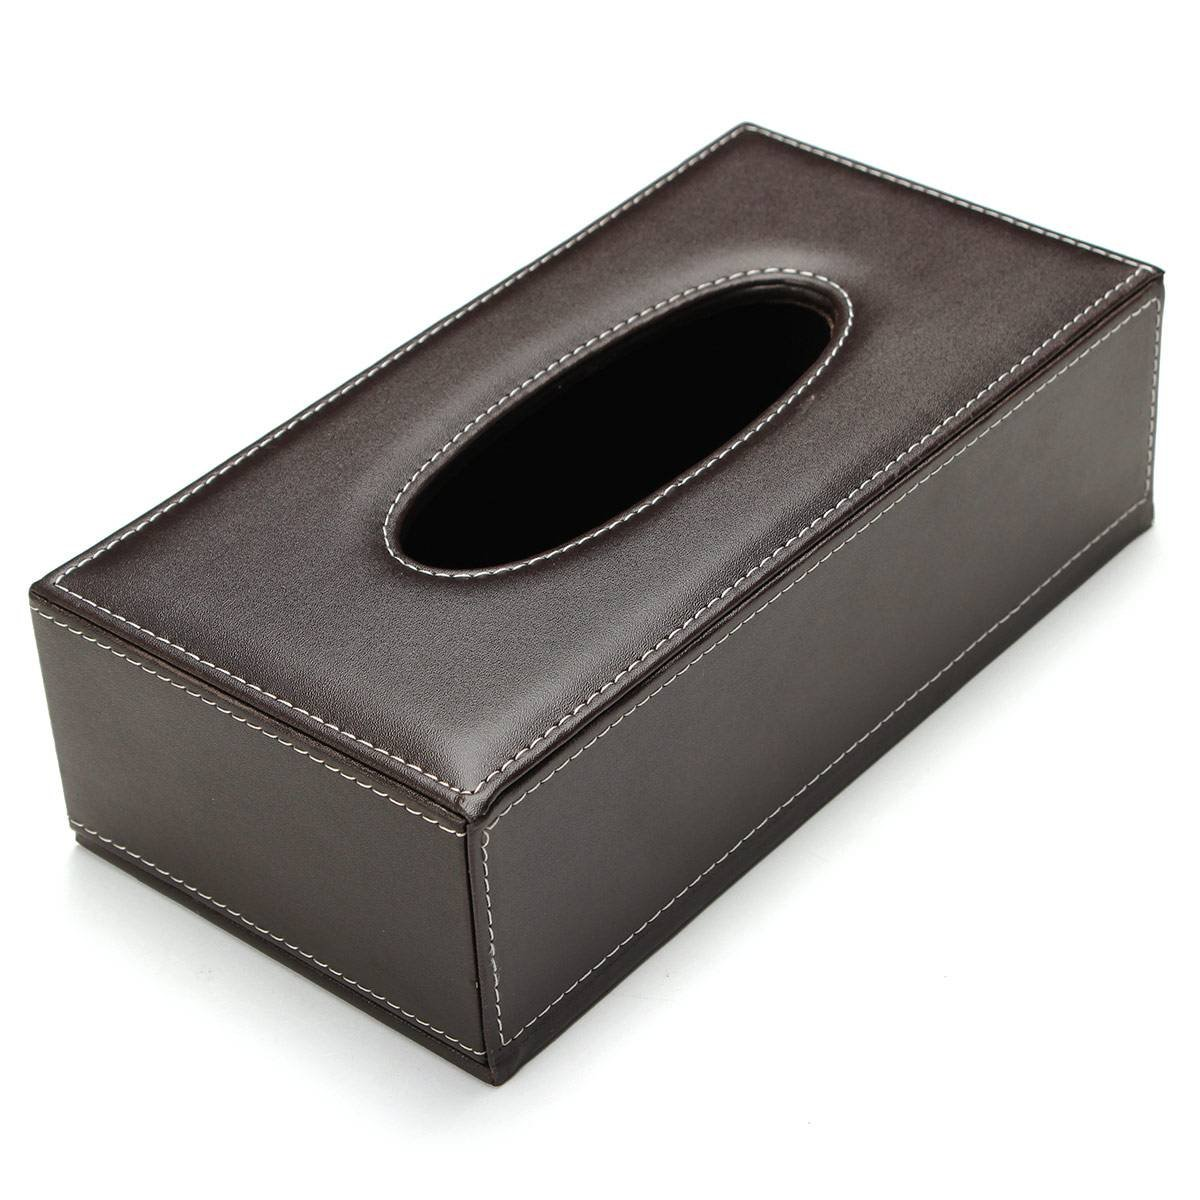 TOYL Portable Leather Rectangular Tissue Cover Box Holders Case Pumping Paper Hotel Home Car Gift Brown